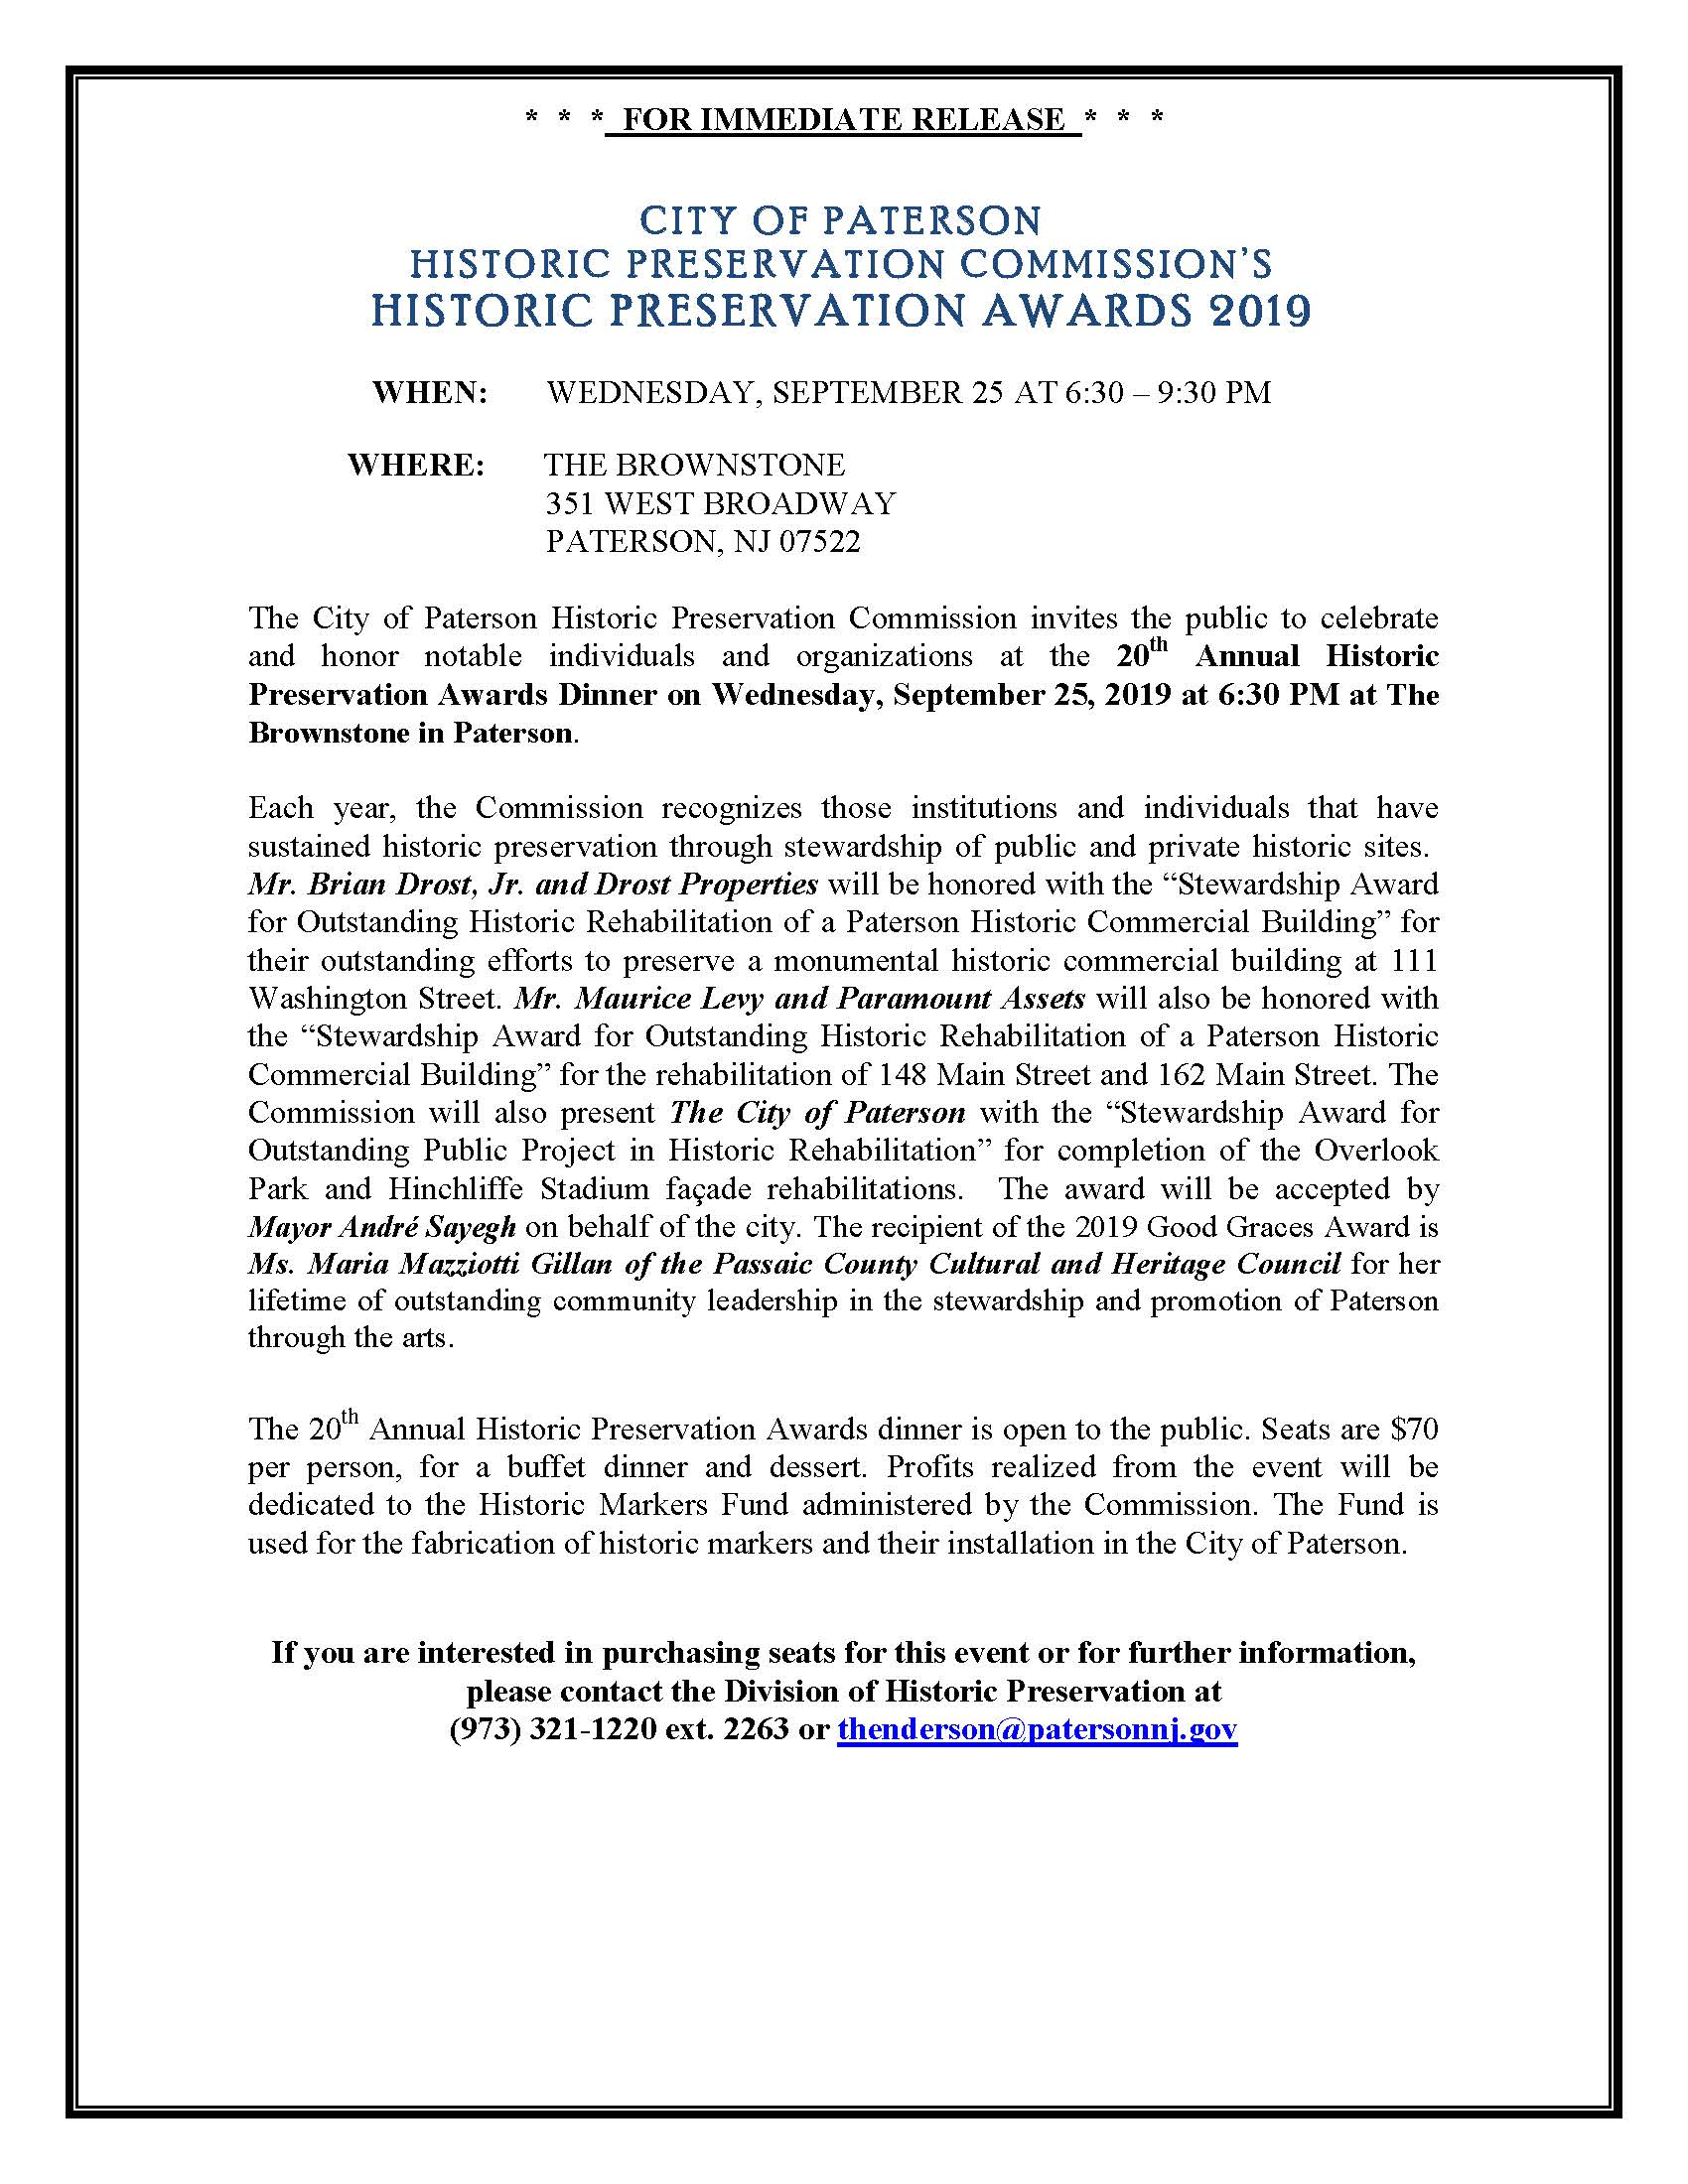 20th Annual Historic Preservation Commission Awards Dinner